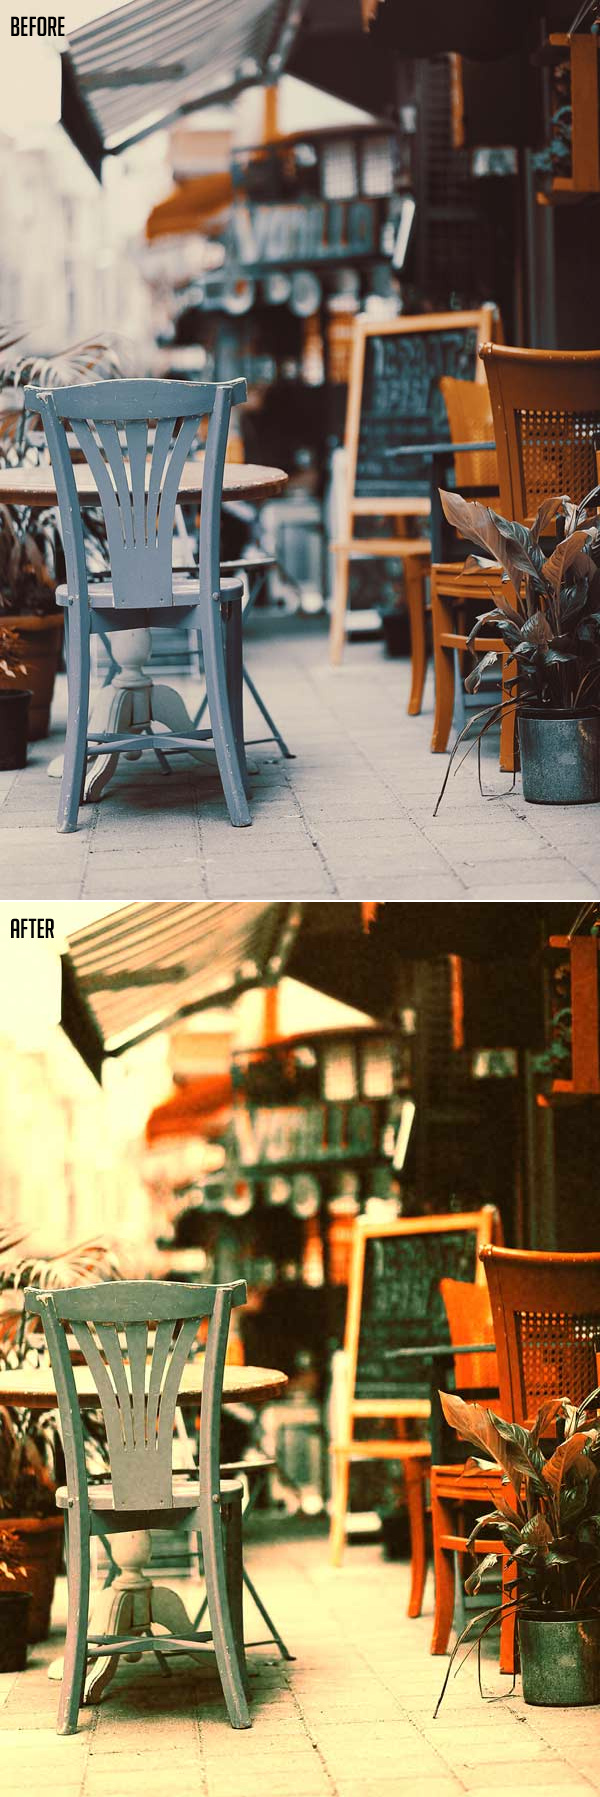 How to Create a Retro Effect in Photoshop Tutorial (Easy steps)